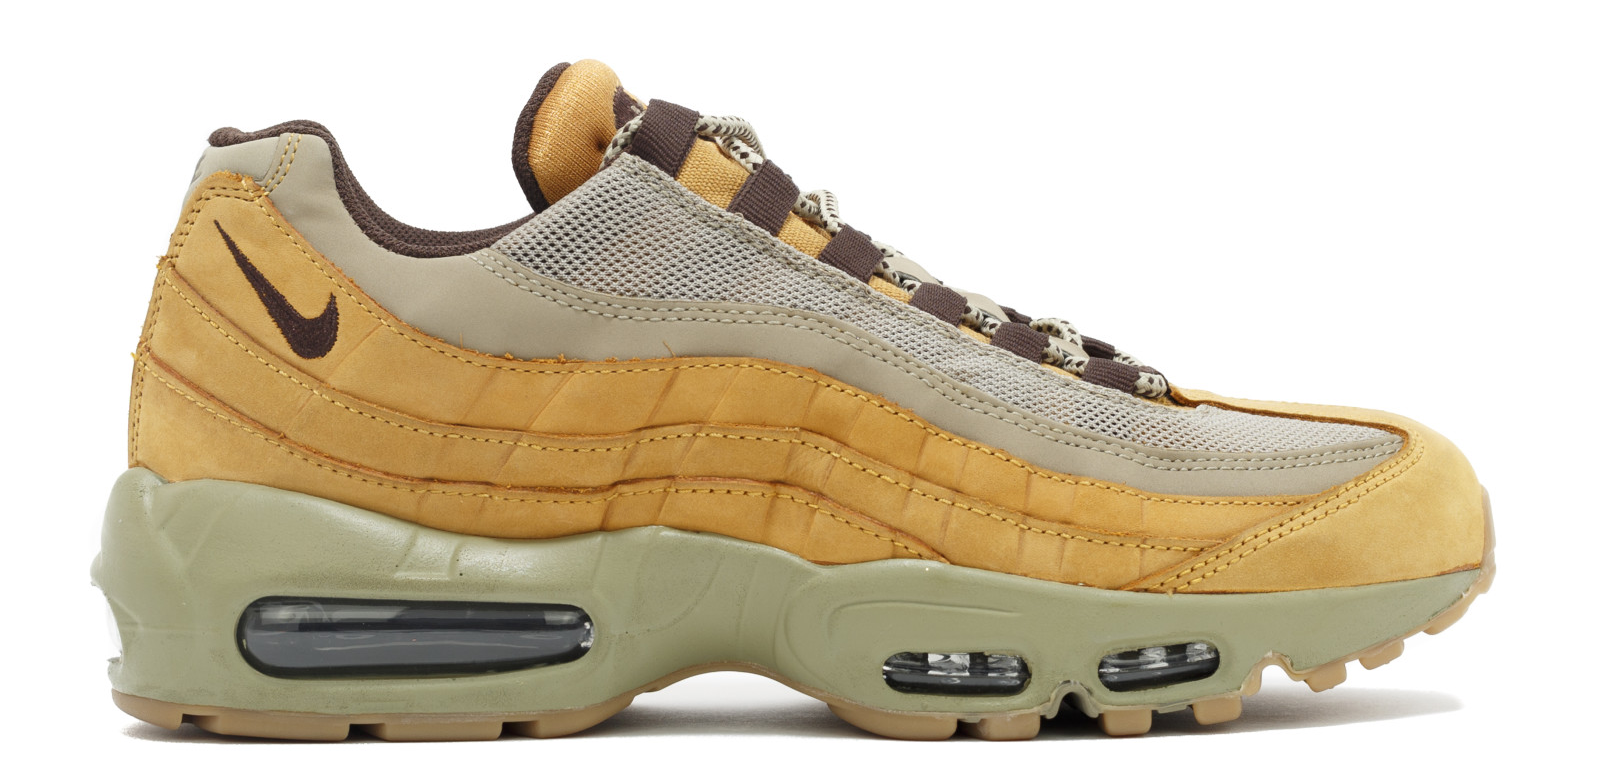 official photos ec0df f5dbd ... canada air max 95 wheat w da85f 5a7f2